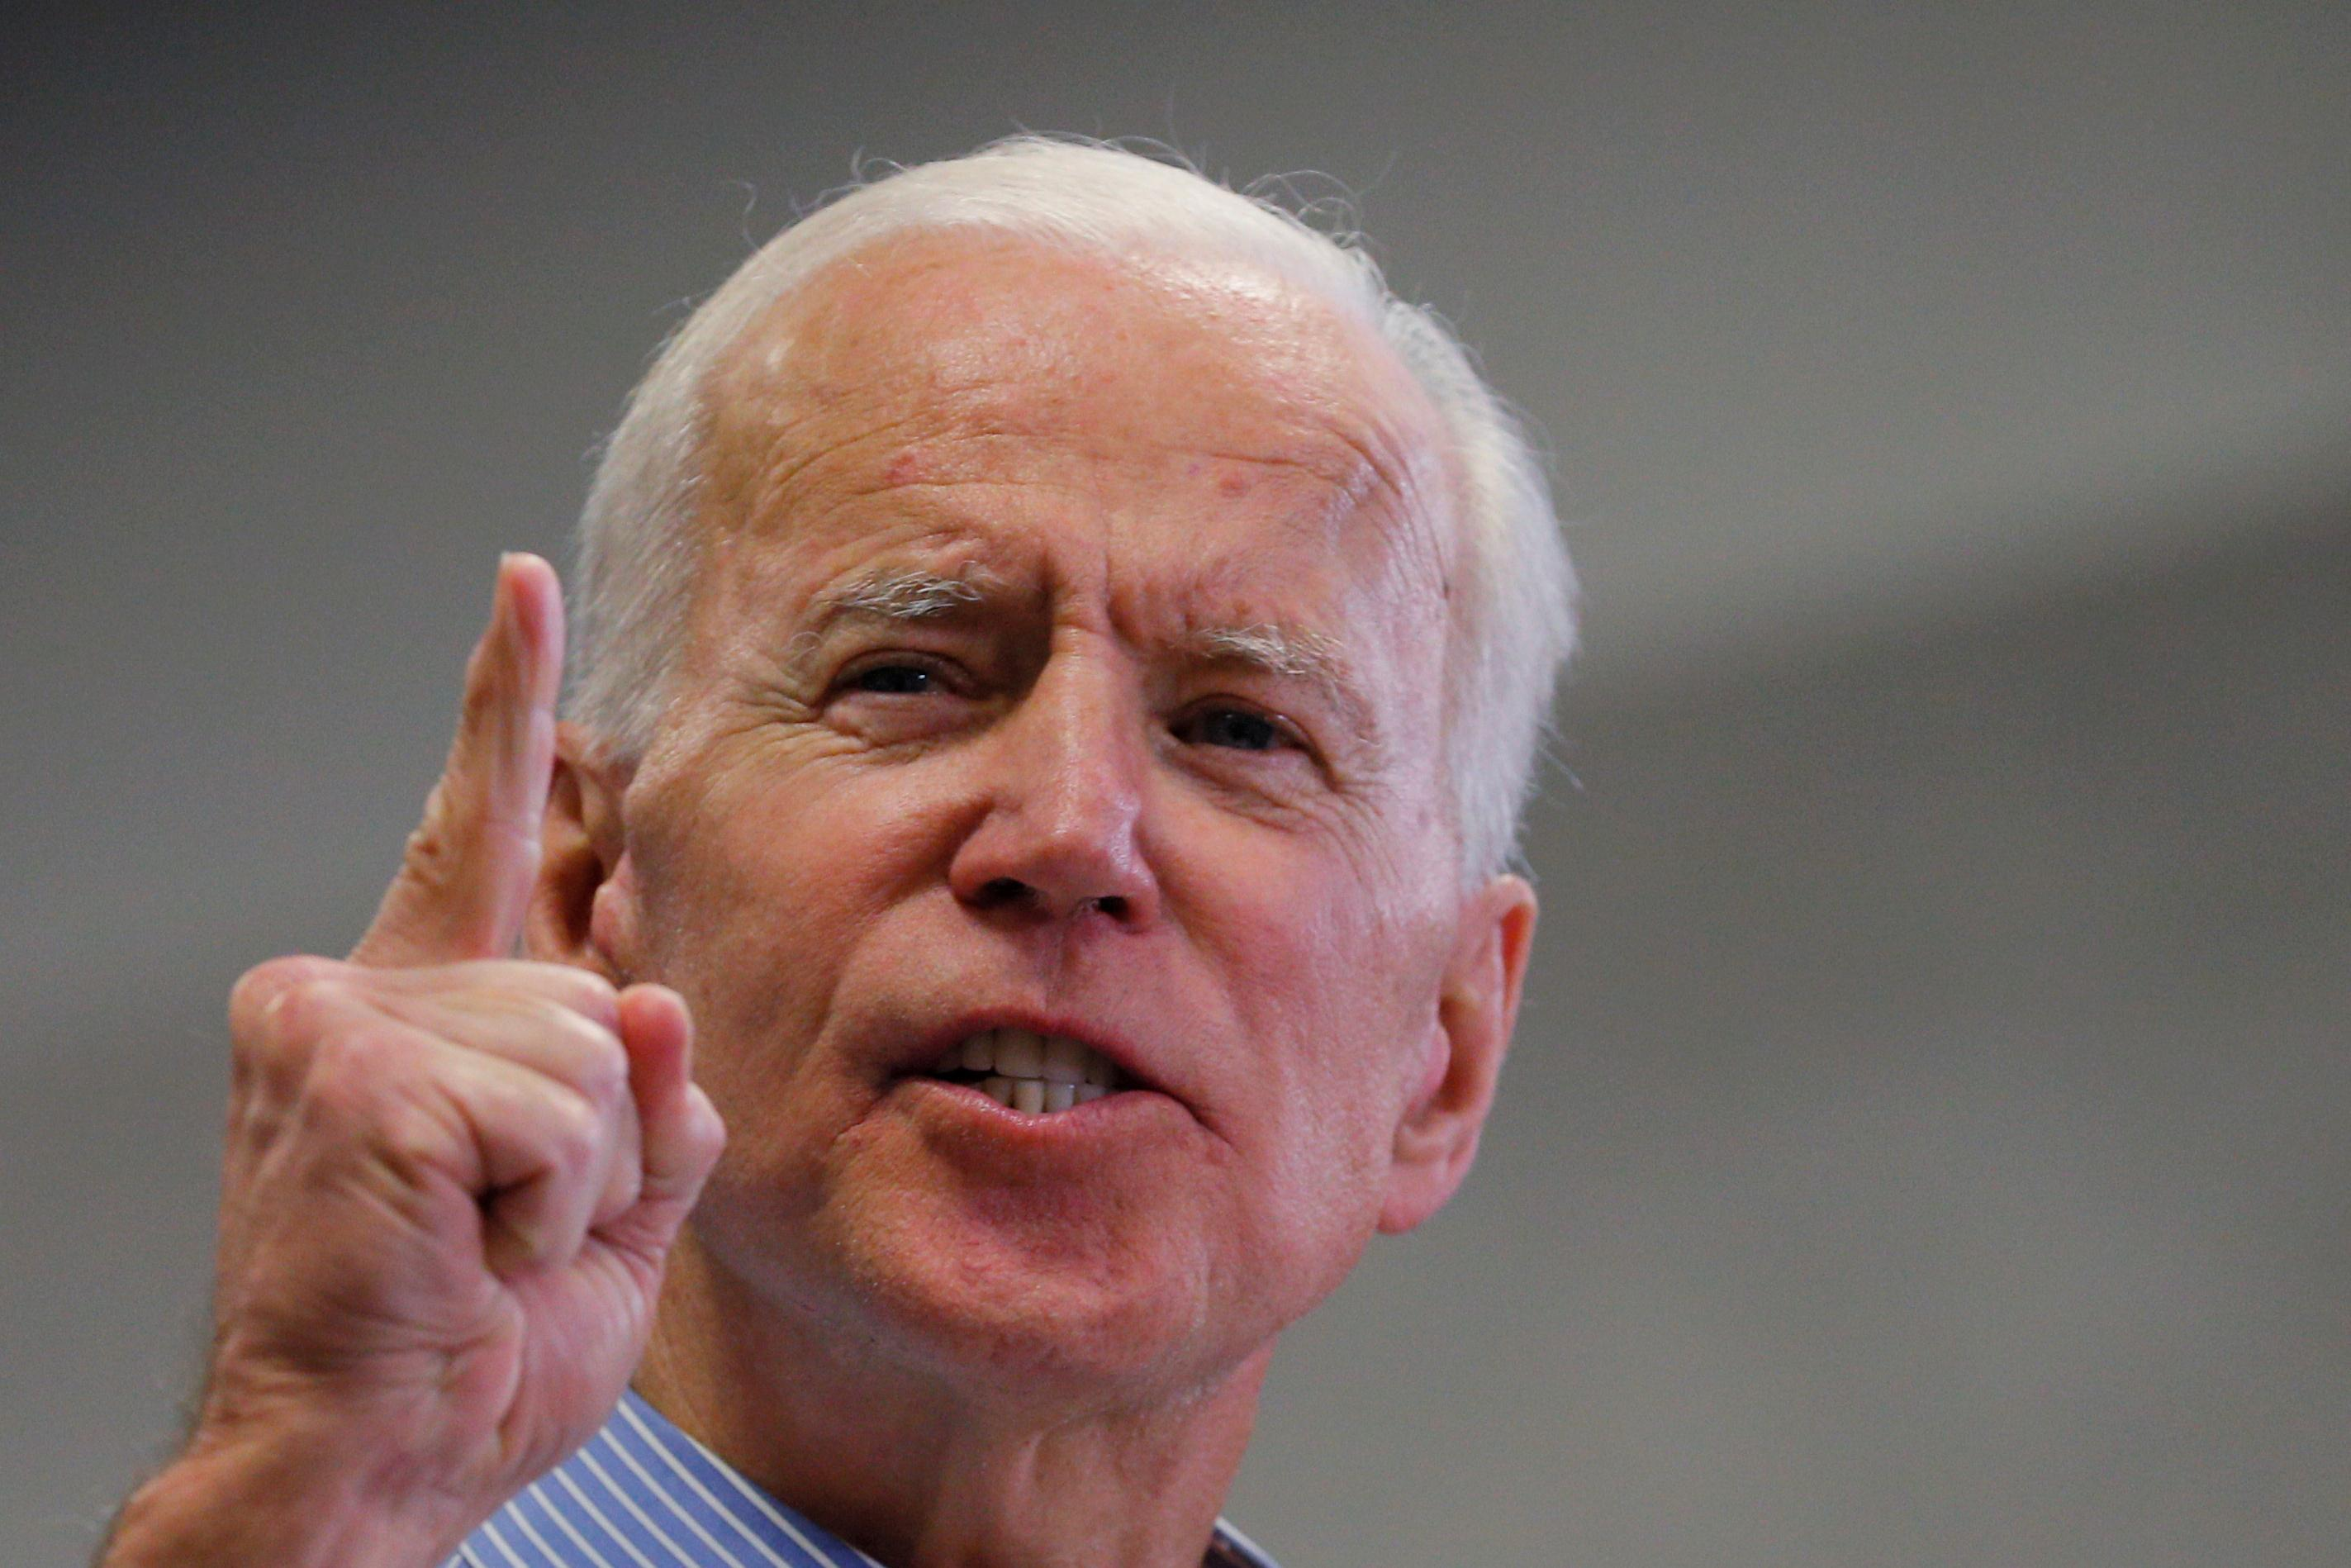 Biden expands lead over rivals for 2020 U.S. presidential nomination despite lack of support from millennials: Reuters/Ipsos poll